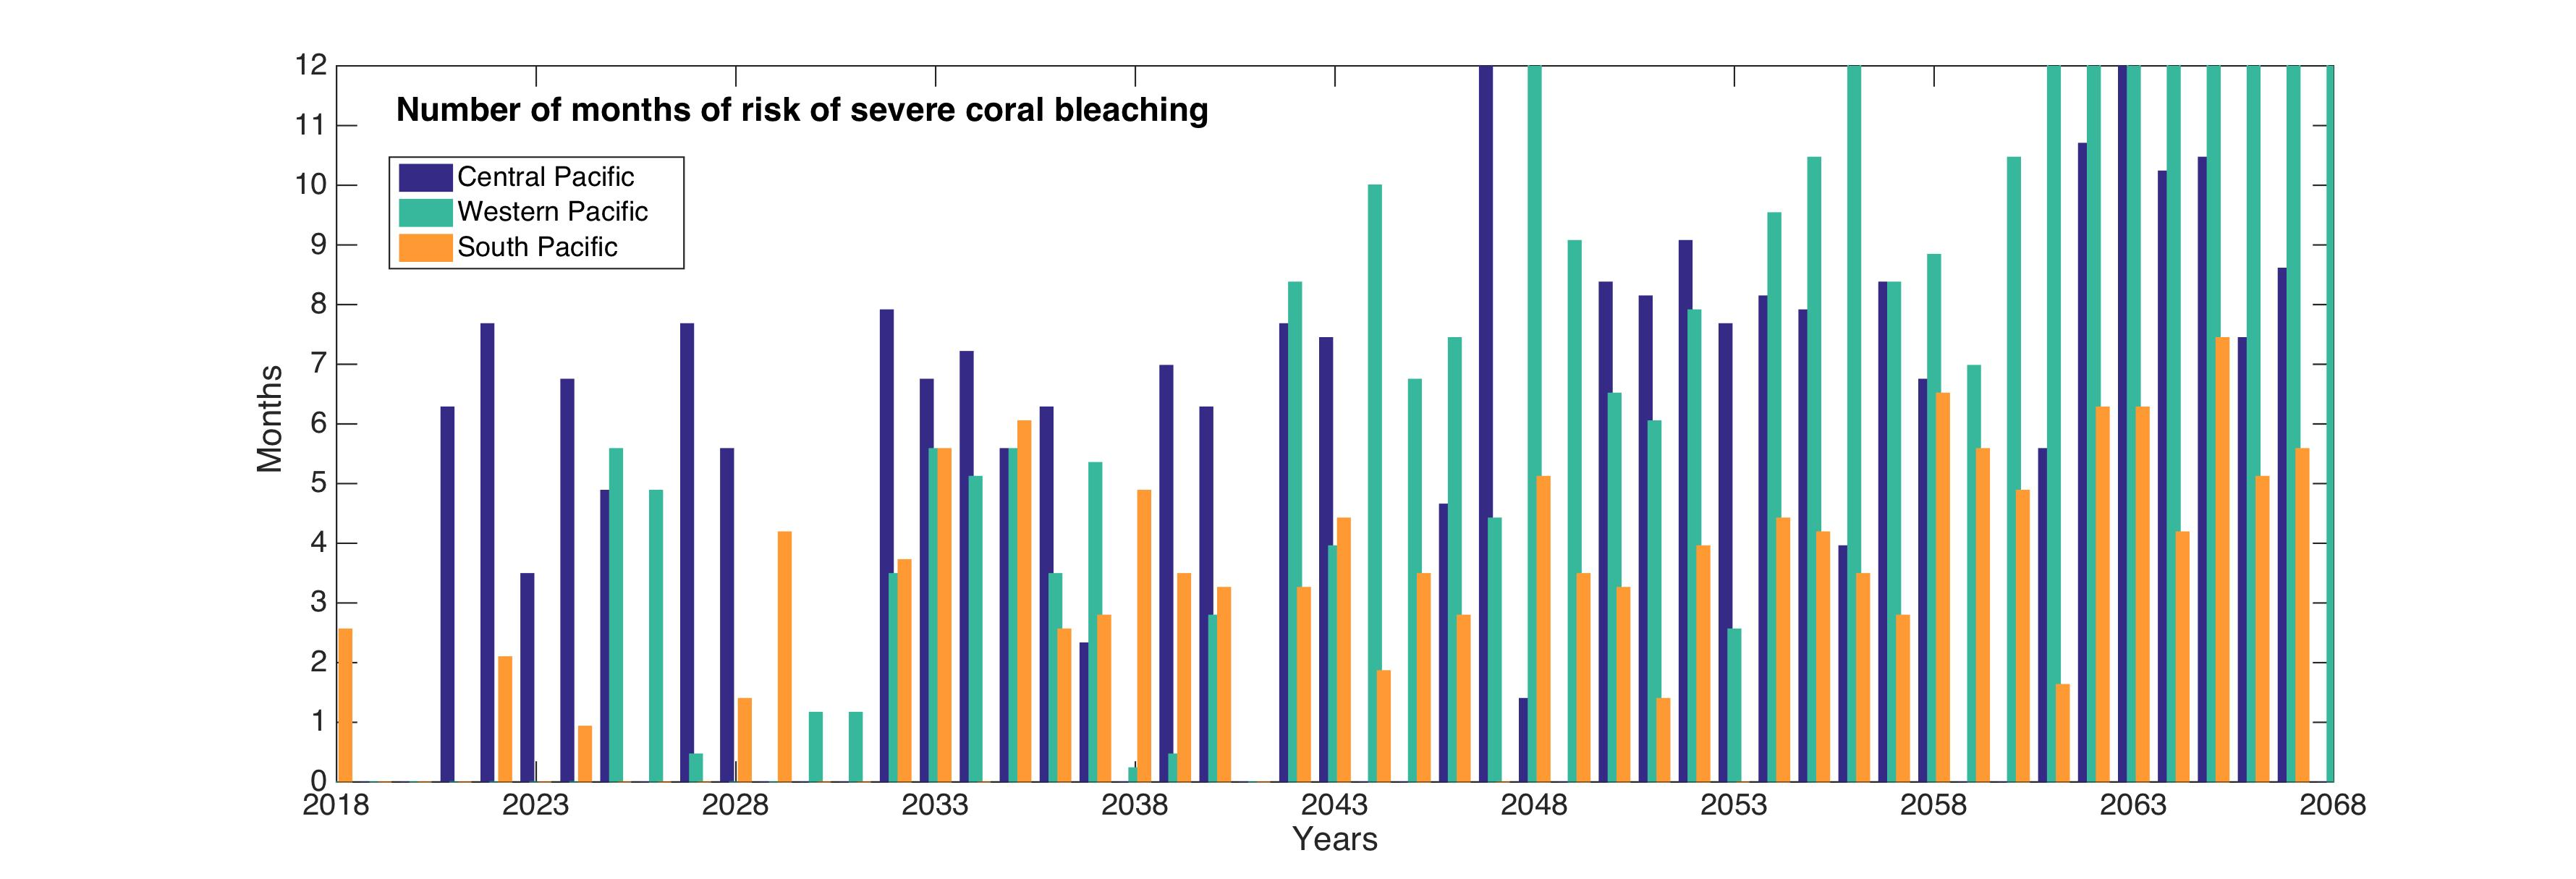 local ocean temperatures play role in protecting corals